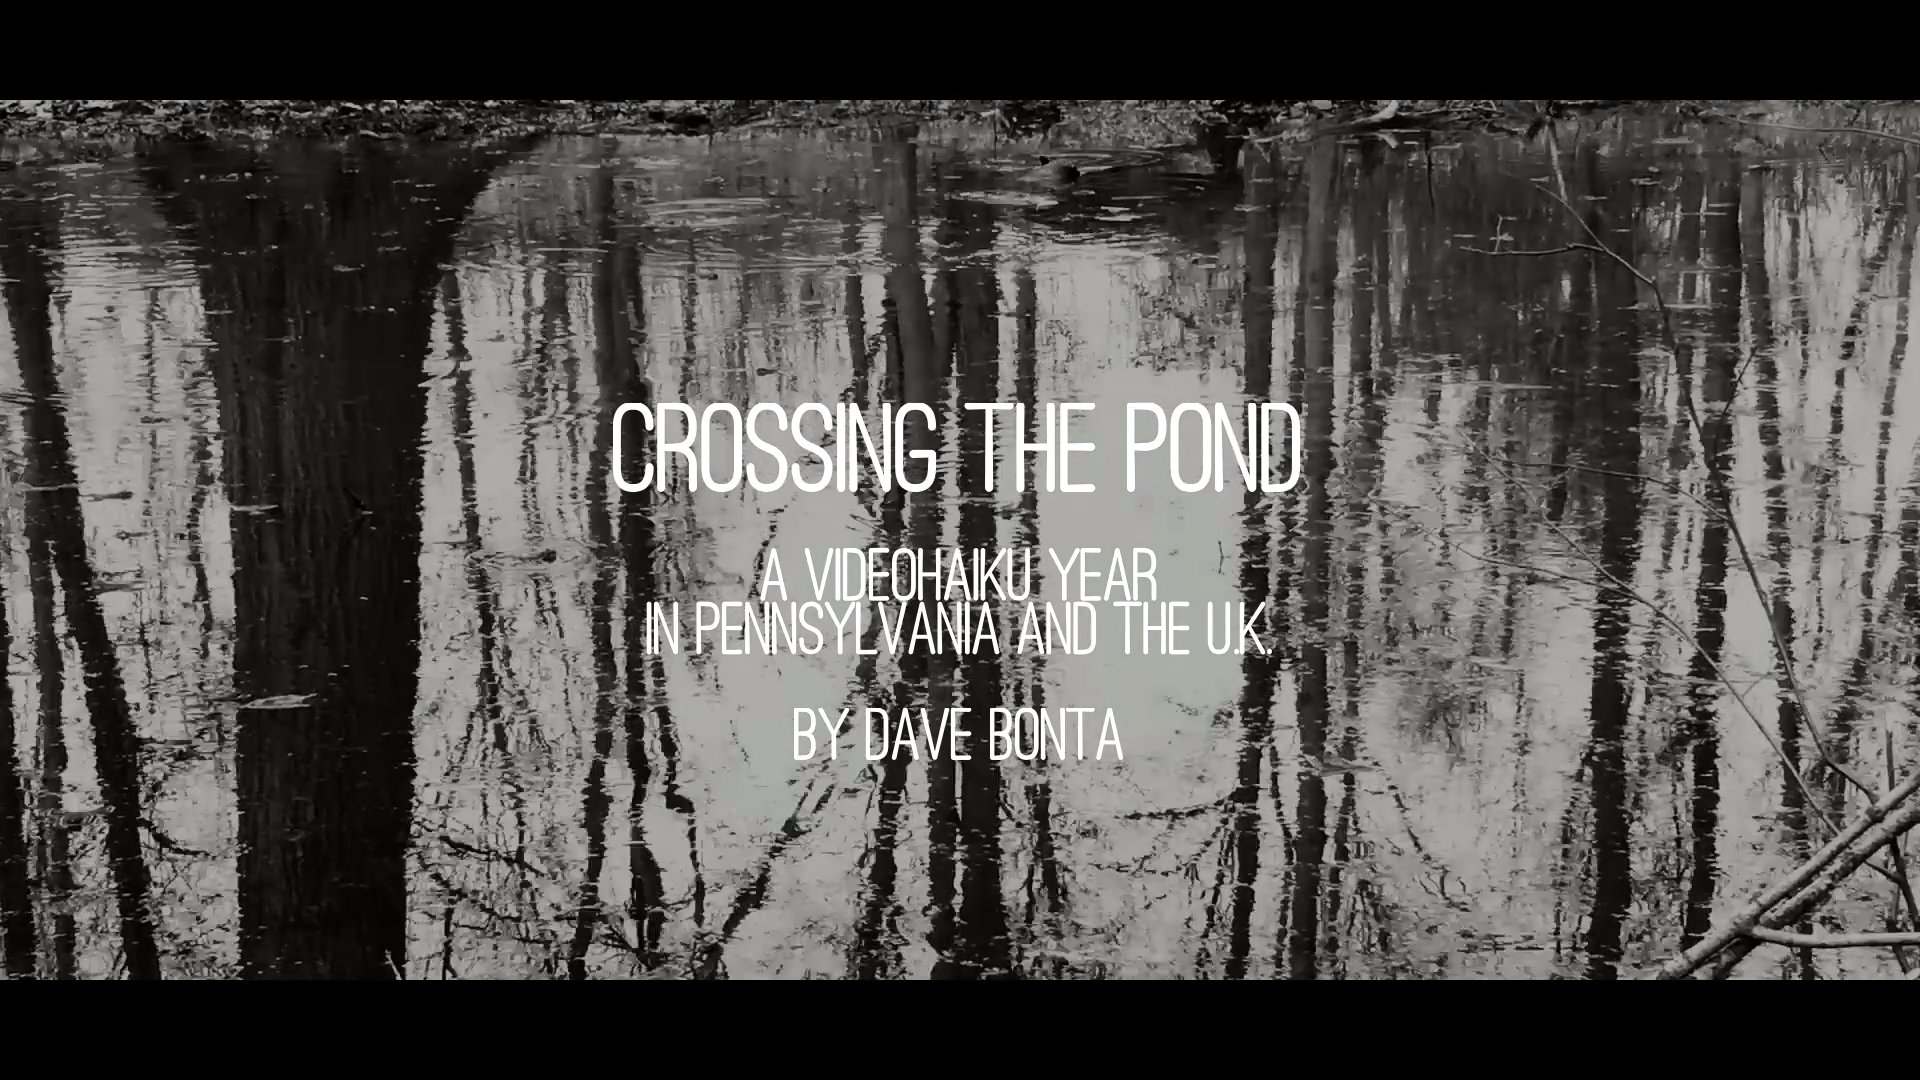 Crossing the Pond title screen